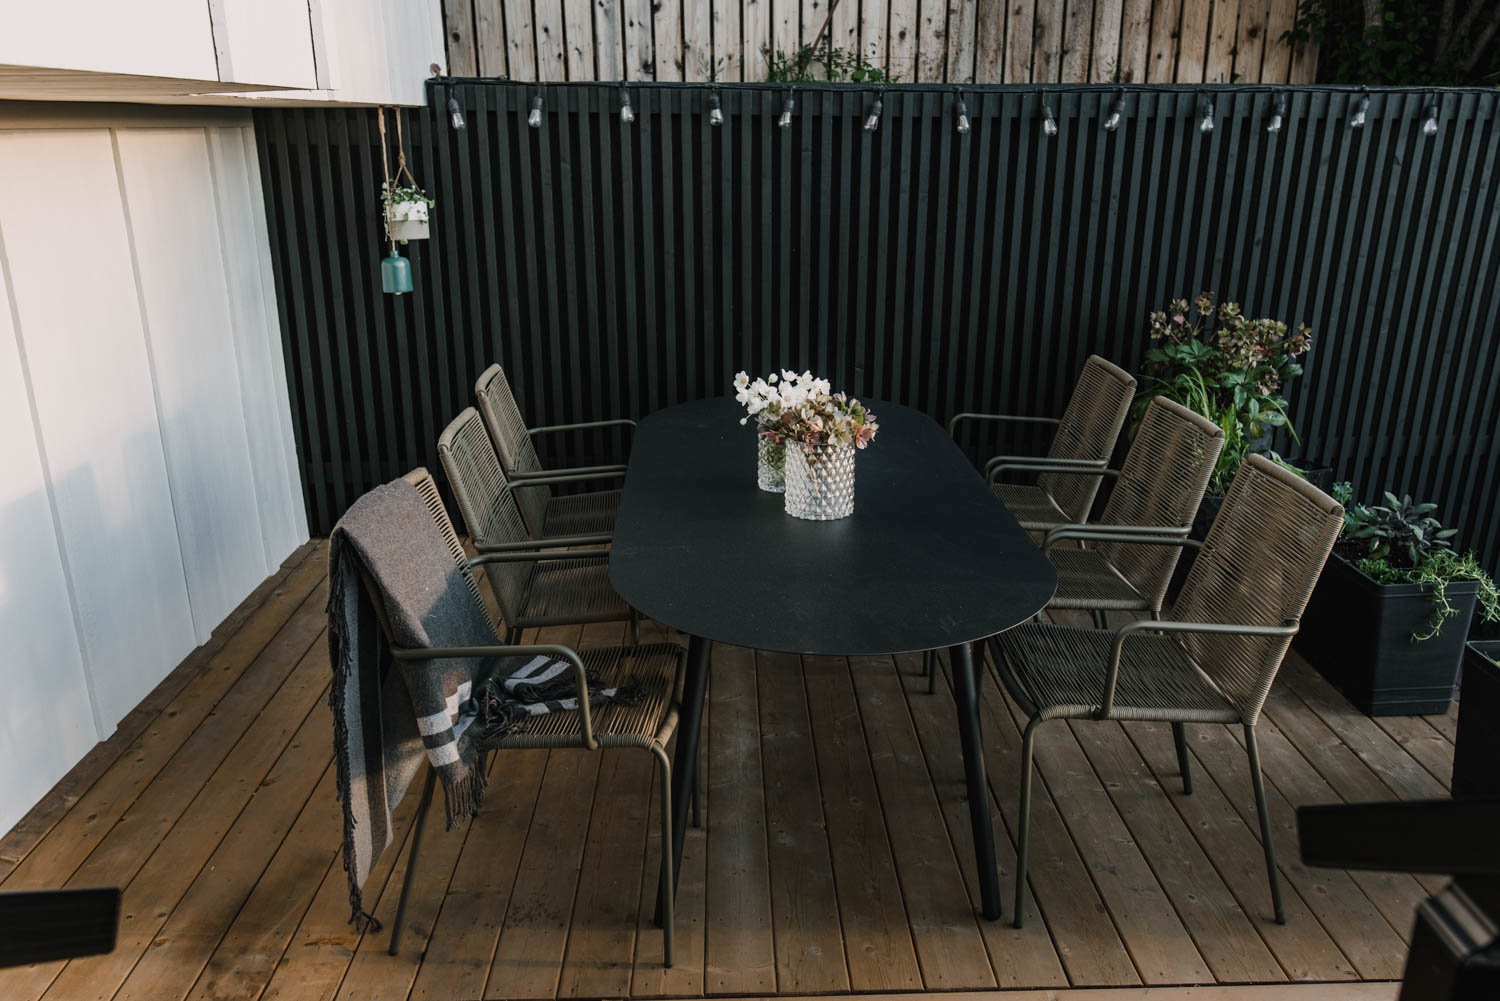 Black white and wood patio from above